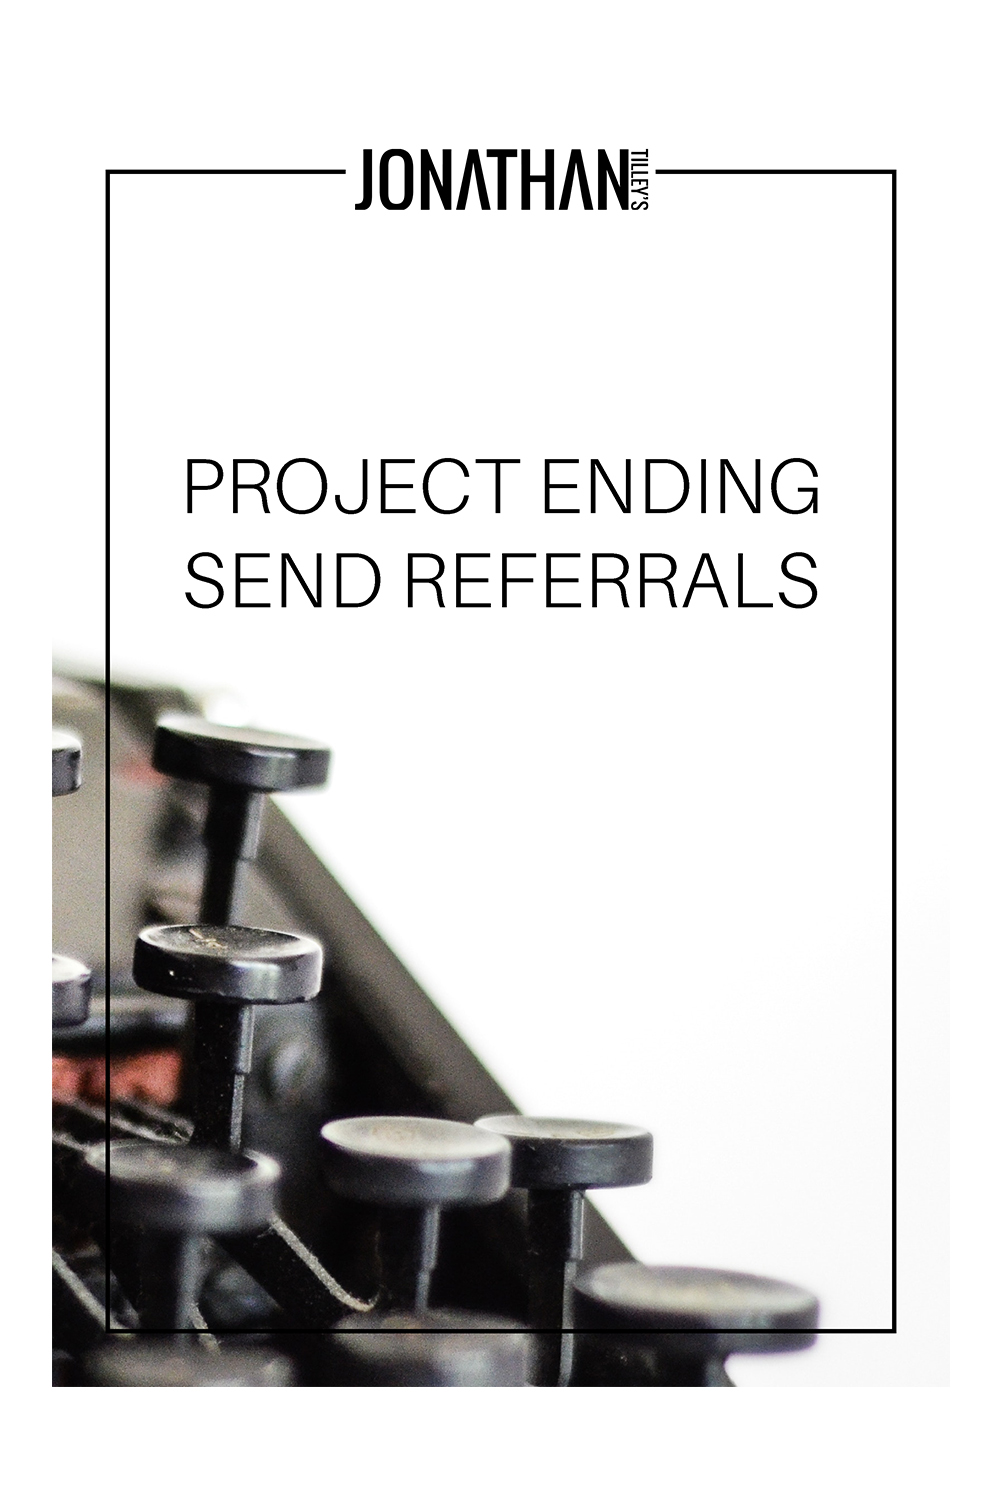 SS-Project Ending Send Referrals_Cover.jpg